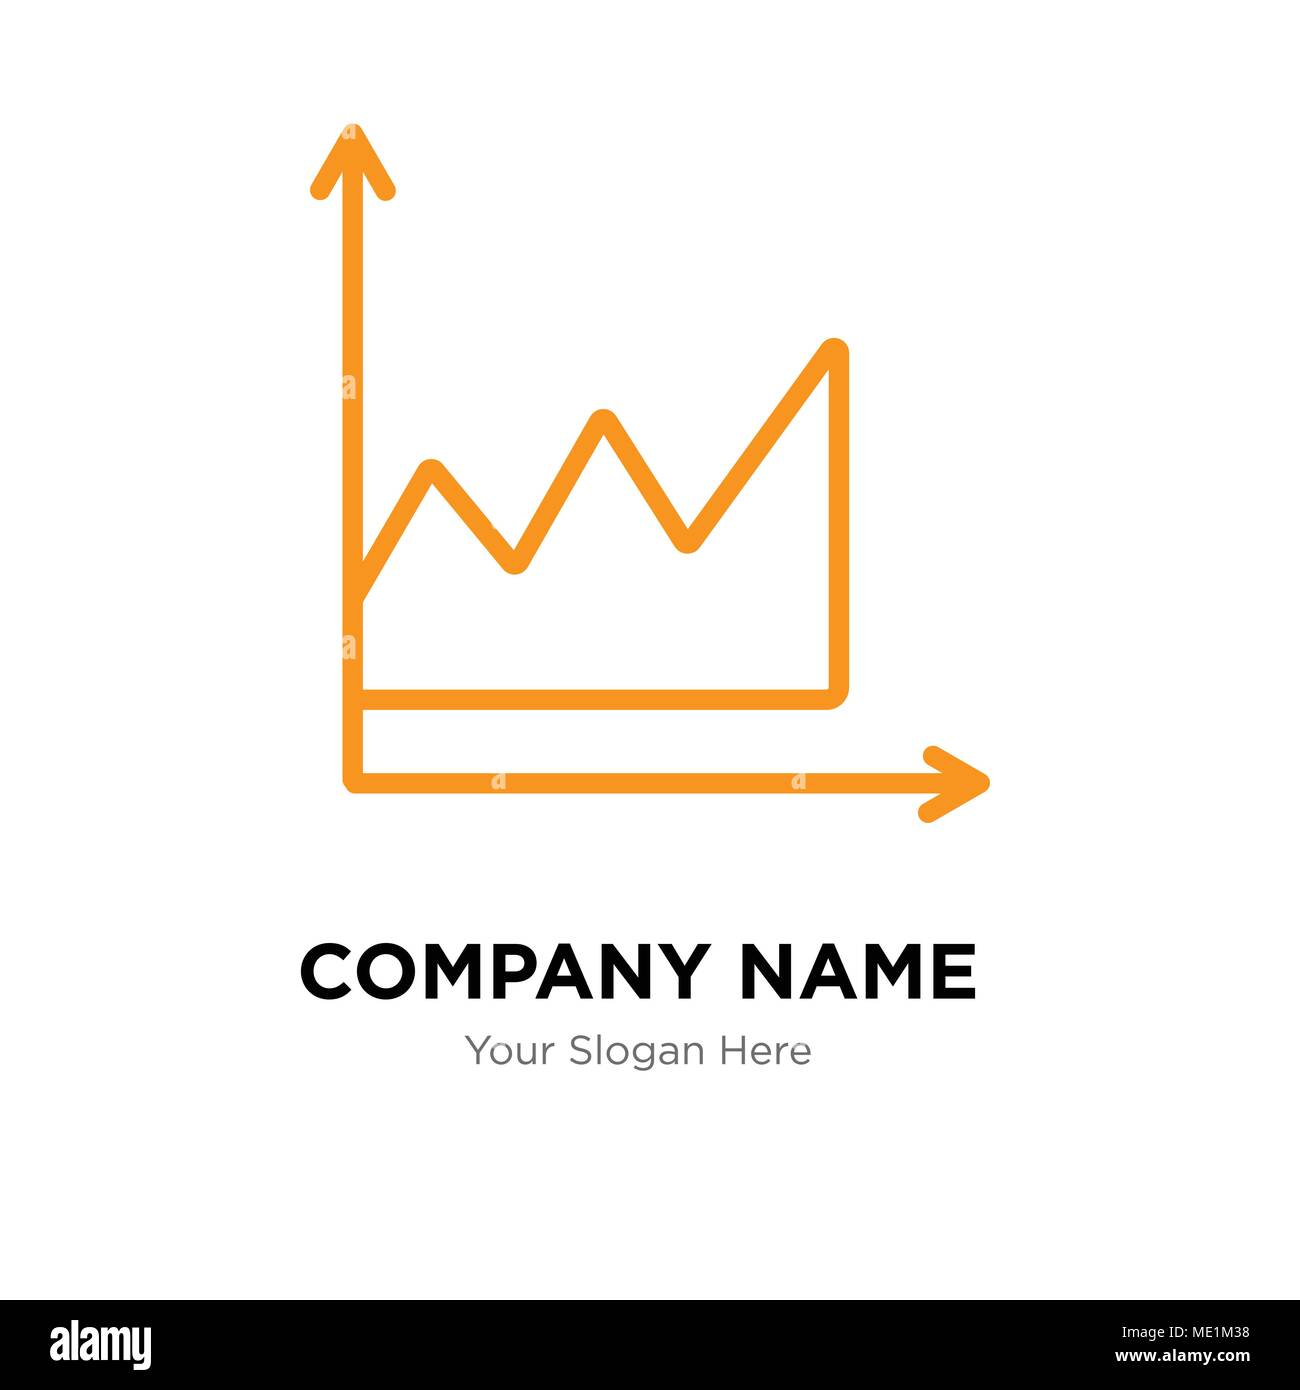 hight resolution of data graphic company logo design template business corporate vector icon stock image